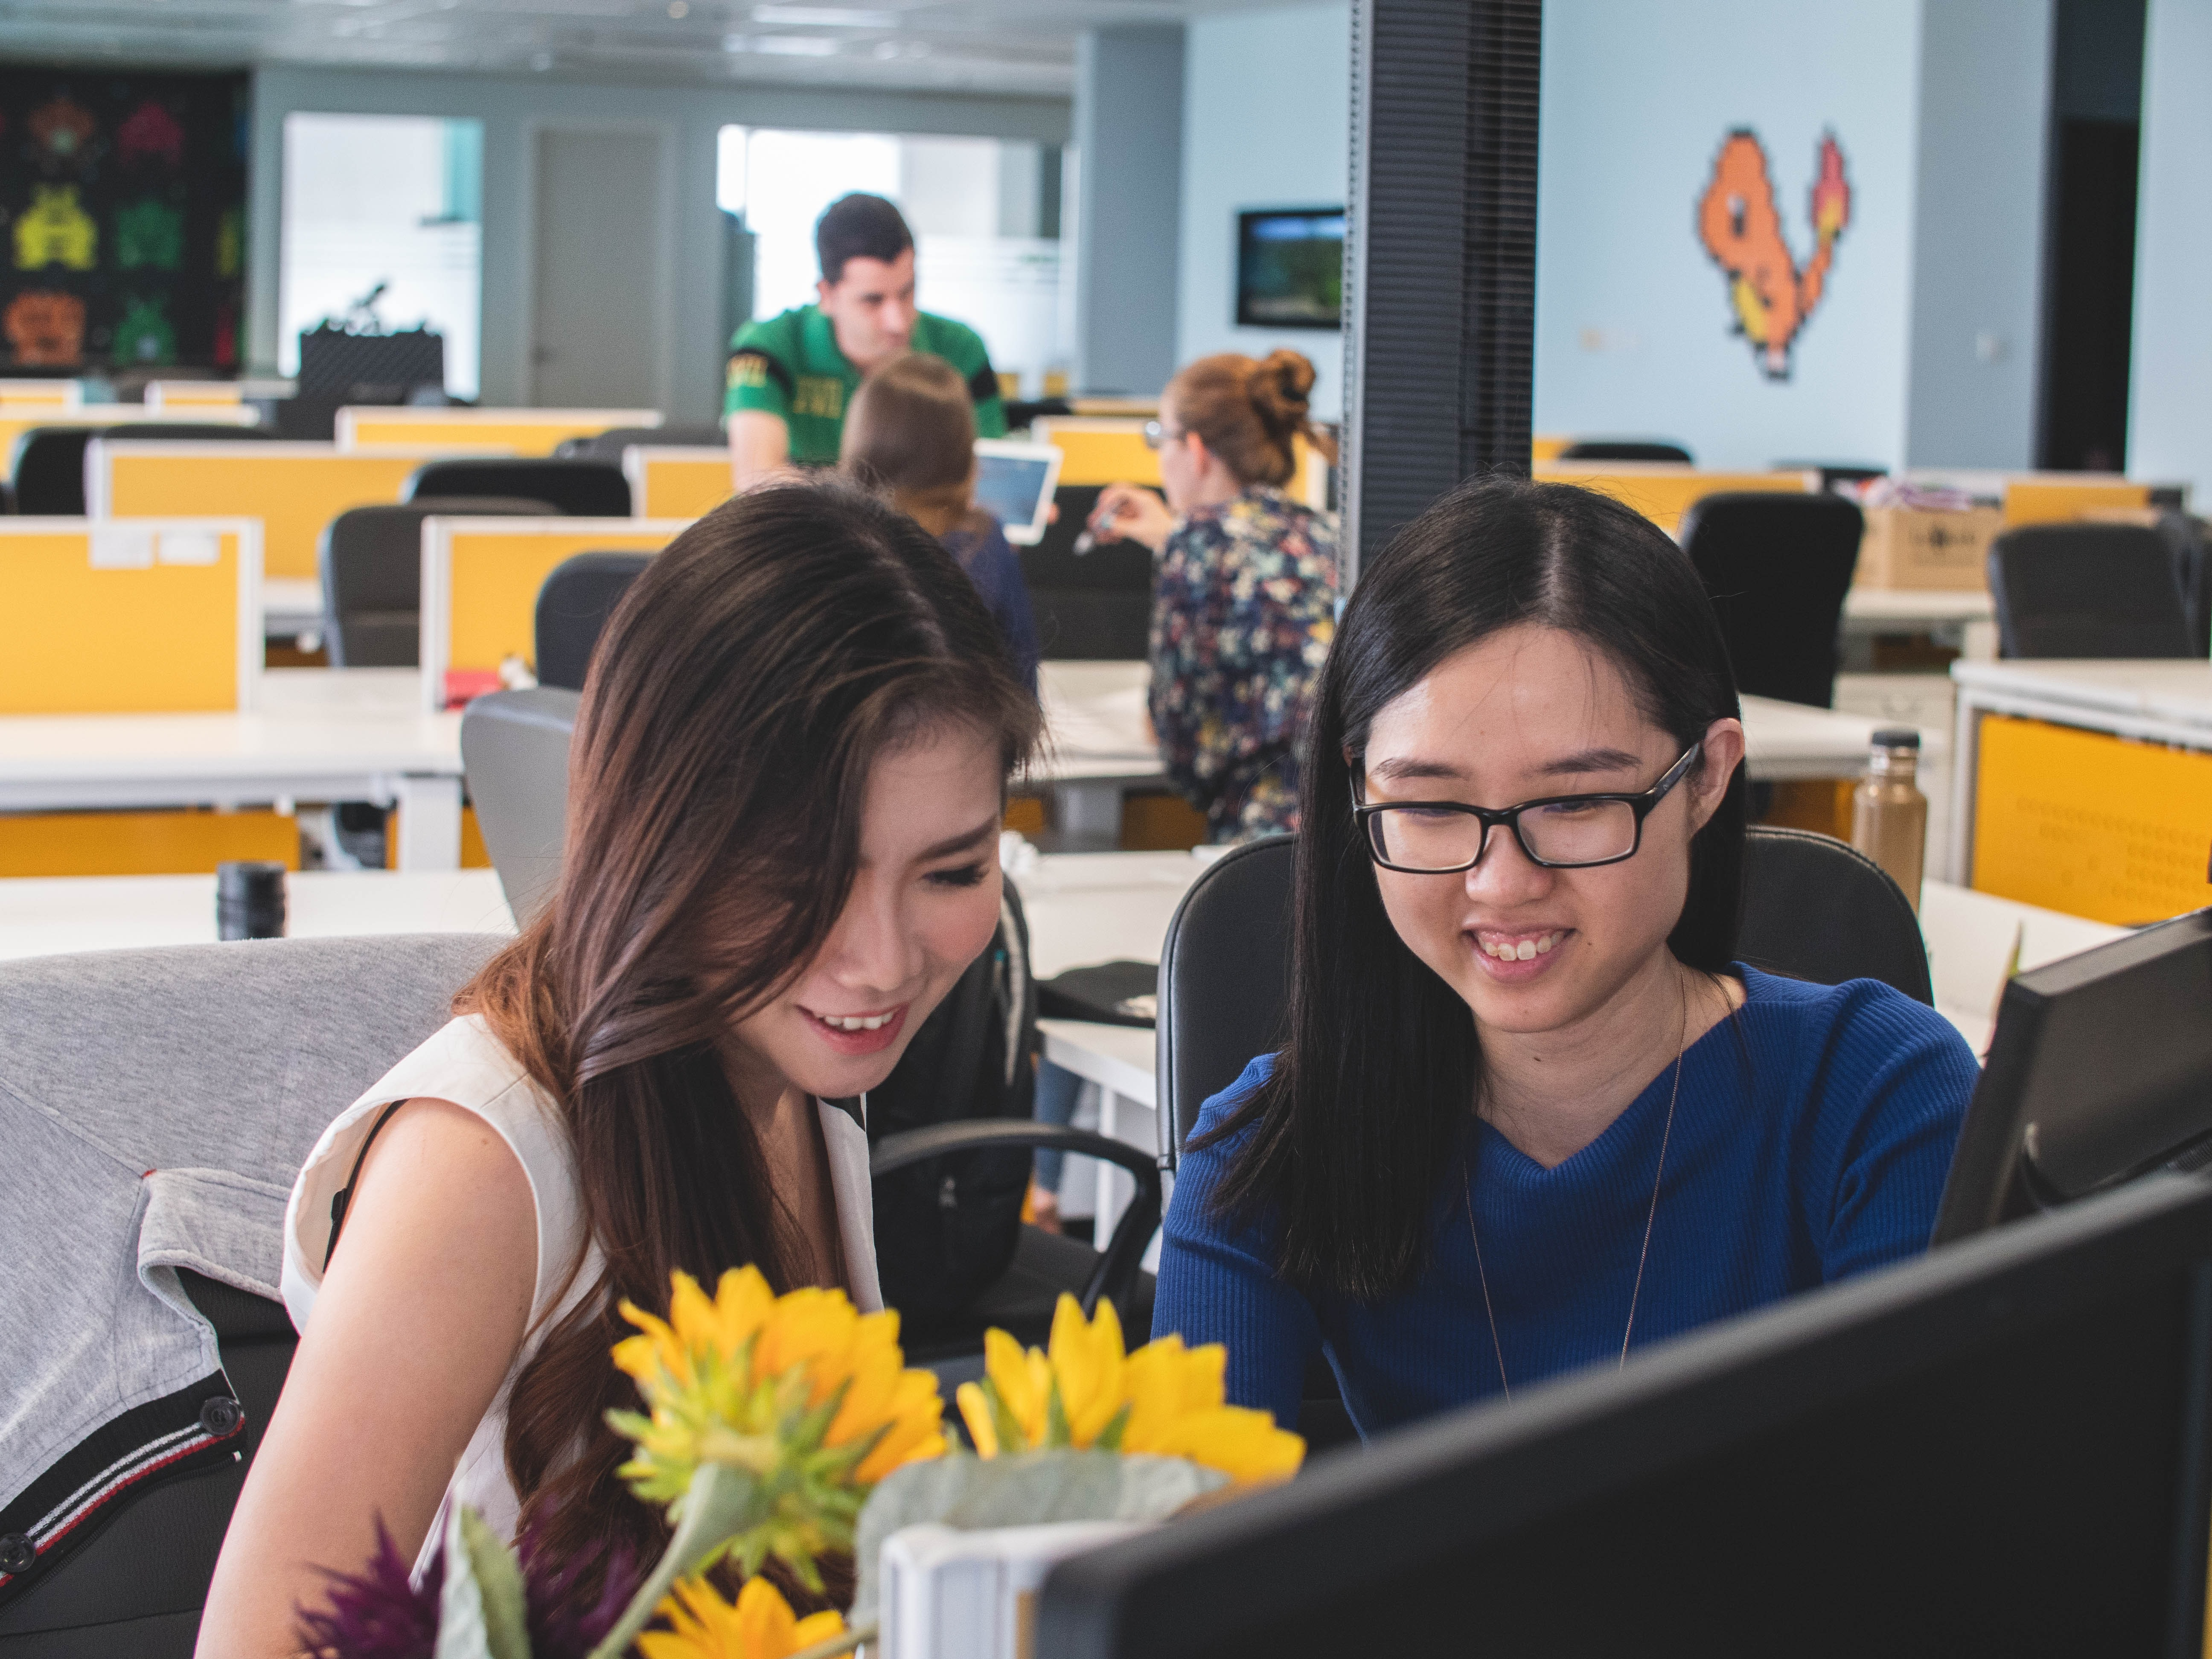 selective focus photography of two women in front of computer monitor